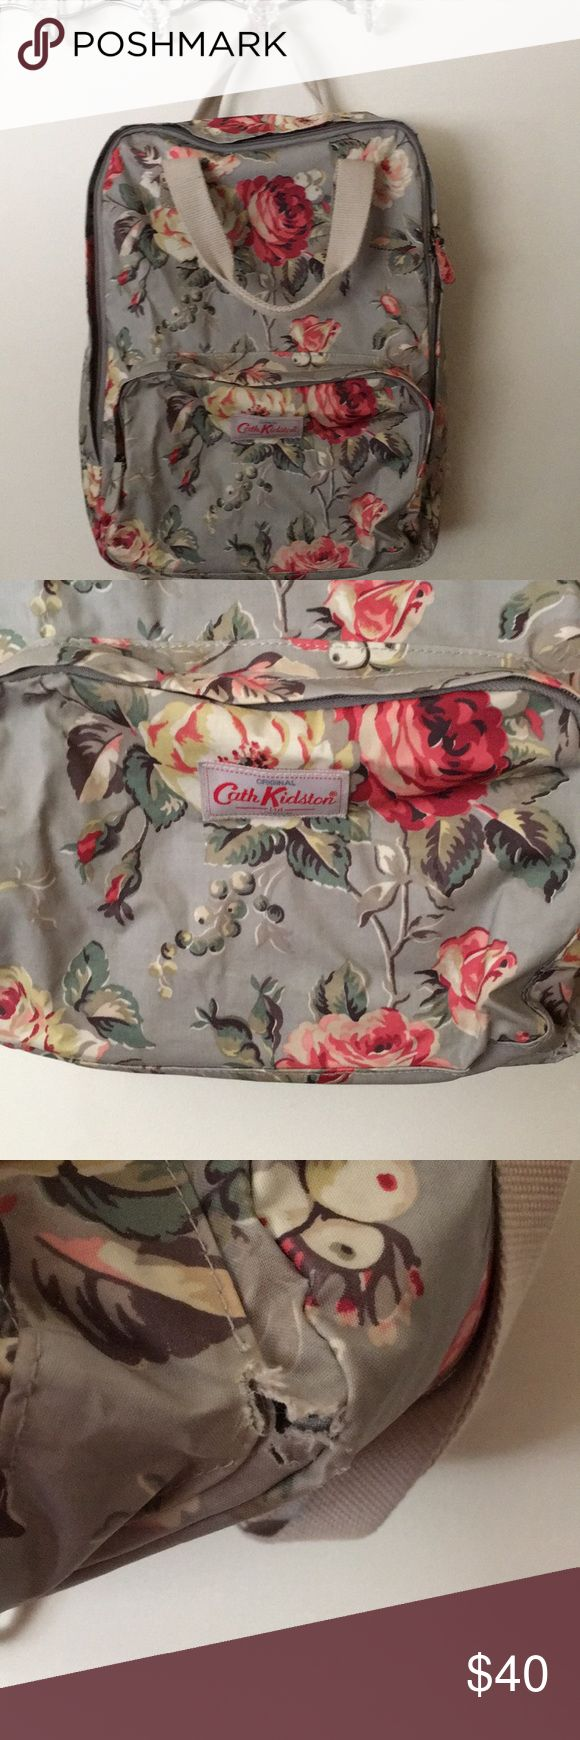 Selling this Cath Kidston Backpack on Poshmark! My username is: aallen1981. #shopmycloset #poshmark #fashion #shopping #style #forsale #Cath Kidston #Handbags